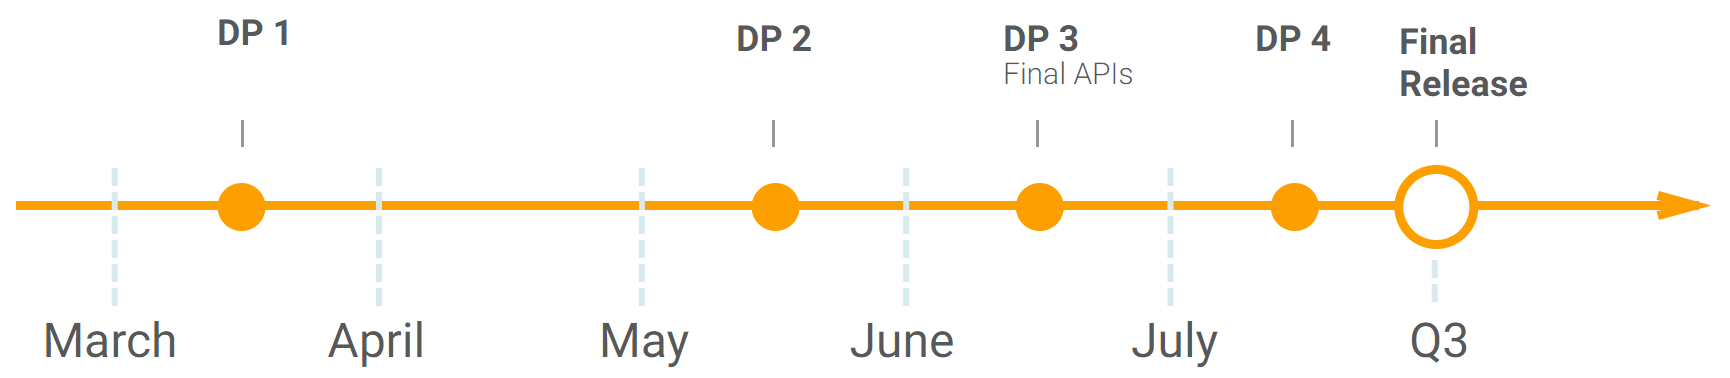 The Android O release timeline. We're getting close to final!